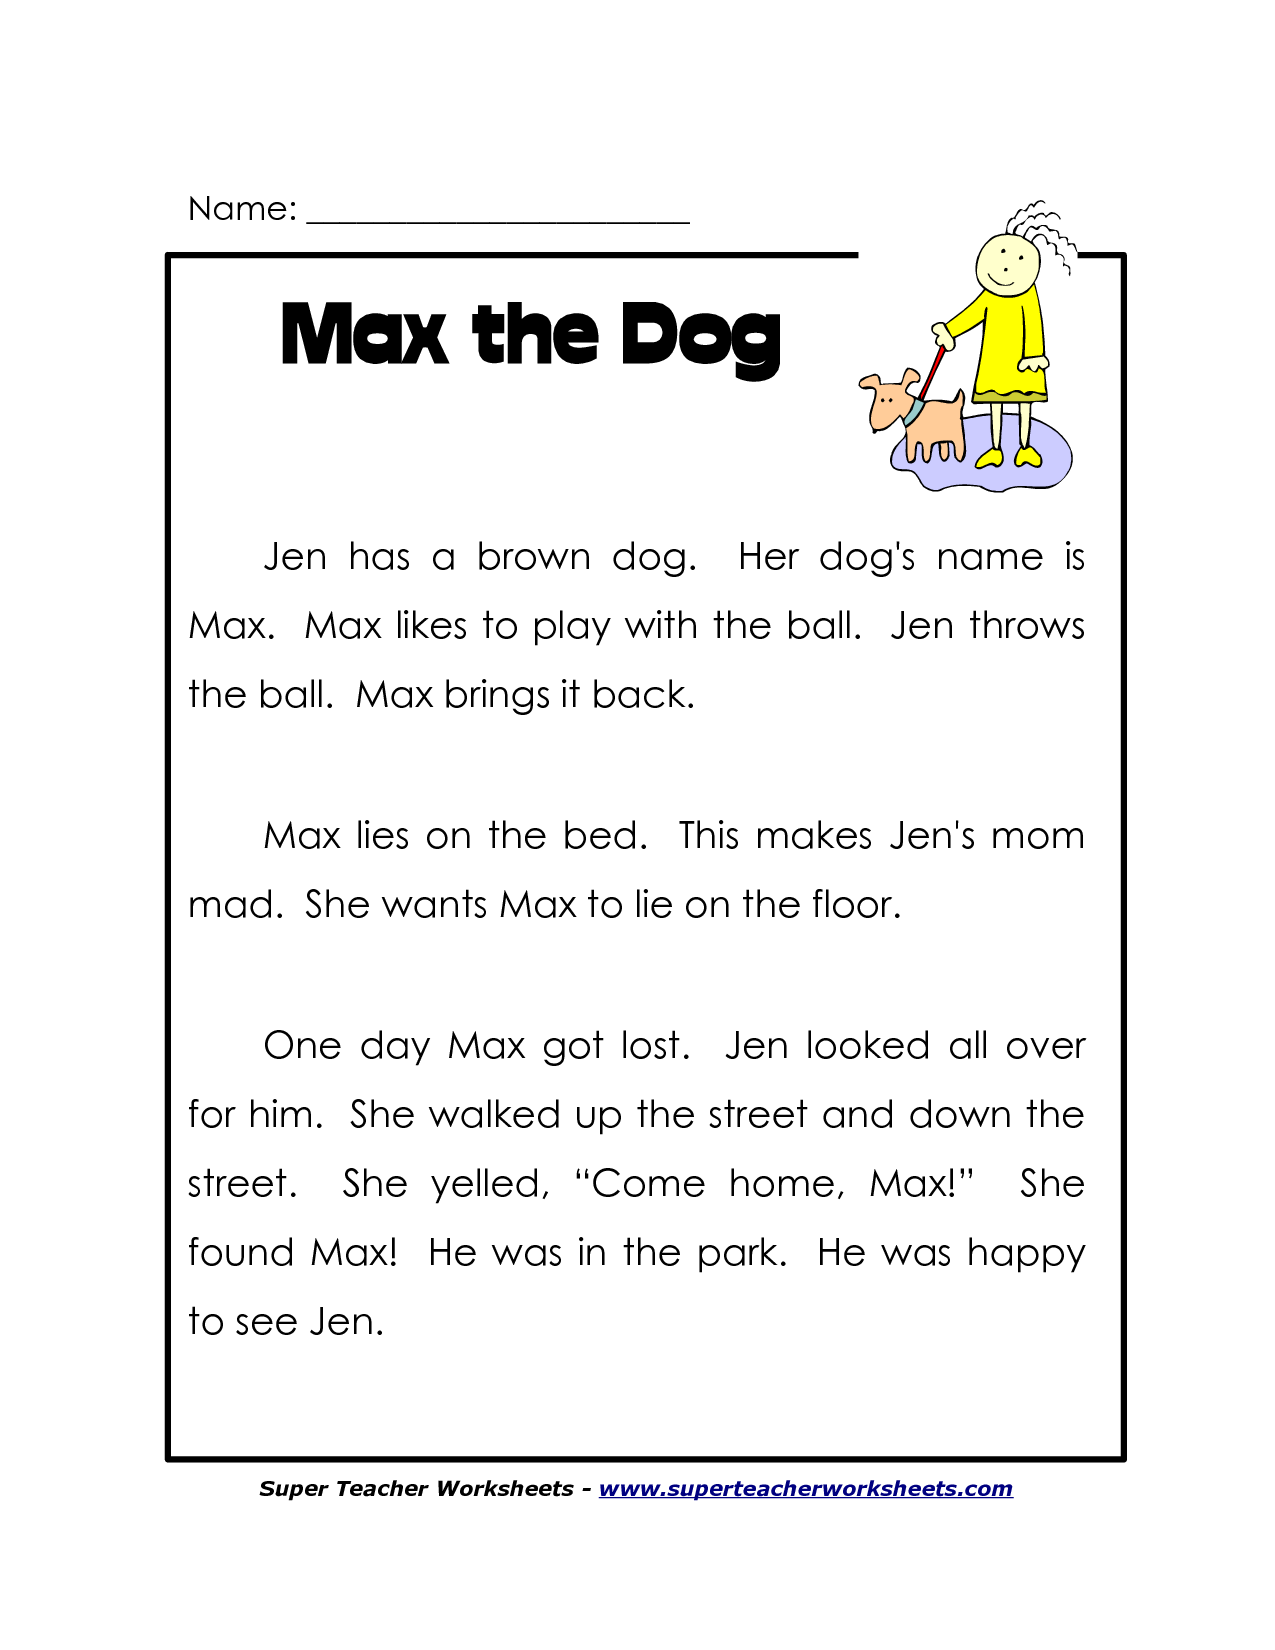 Worksheet Reading Passages For 1st Grade reading worksheets for 2nd grade hd wallpapers download free tumblr